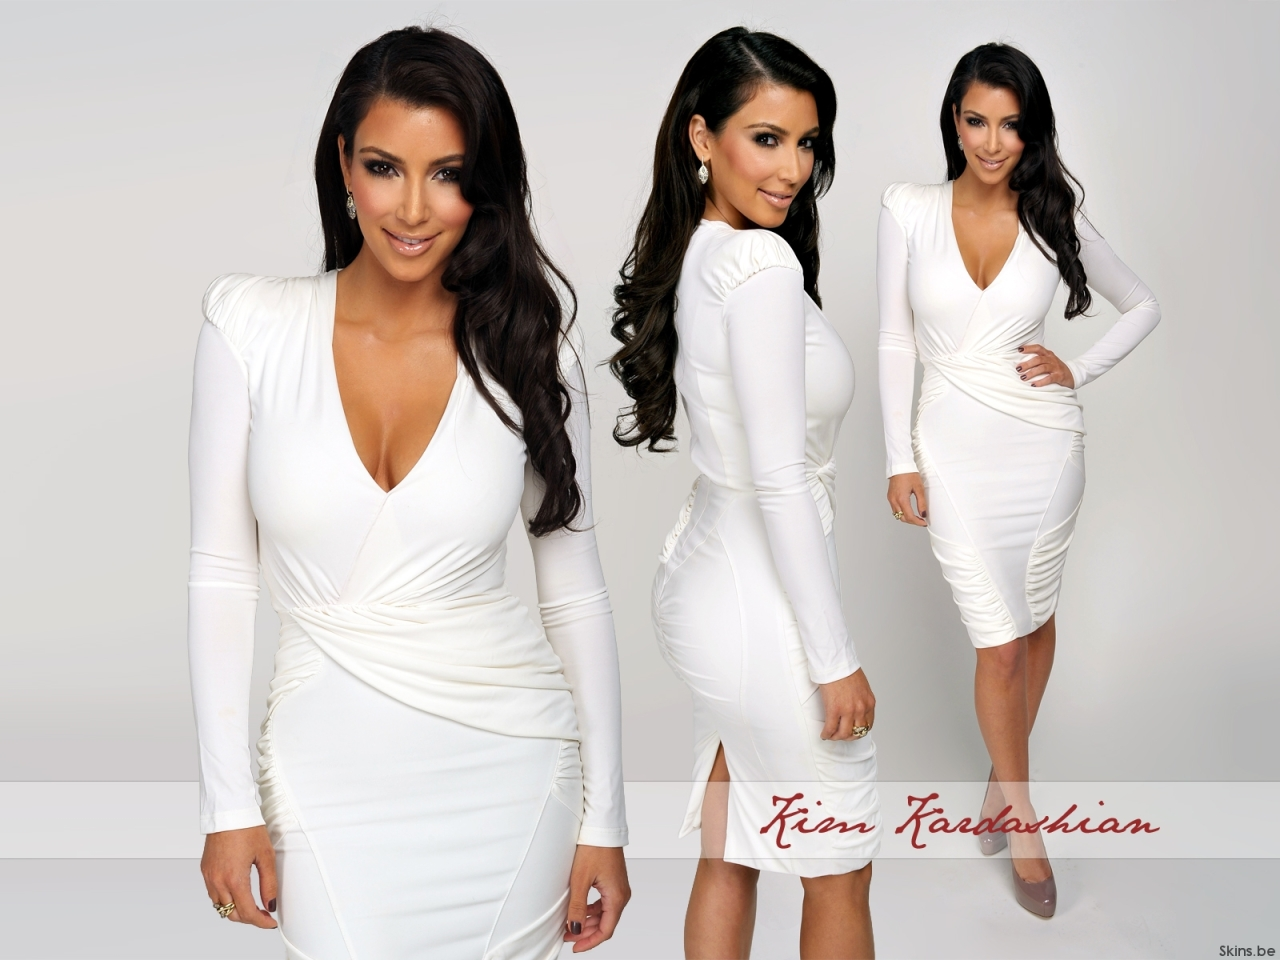 Kim Kardashian wallpaper (#36874)